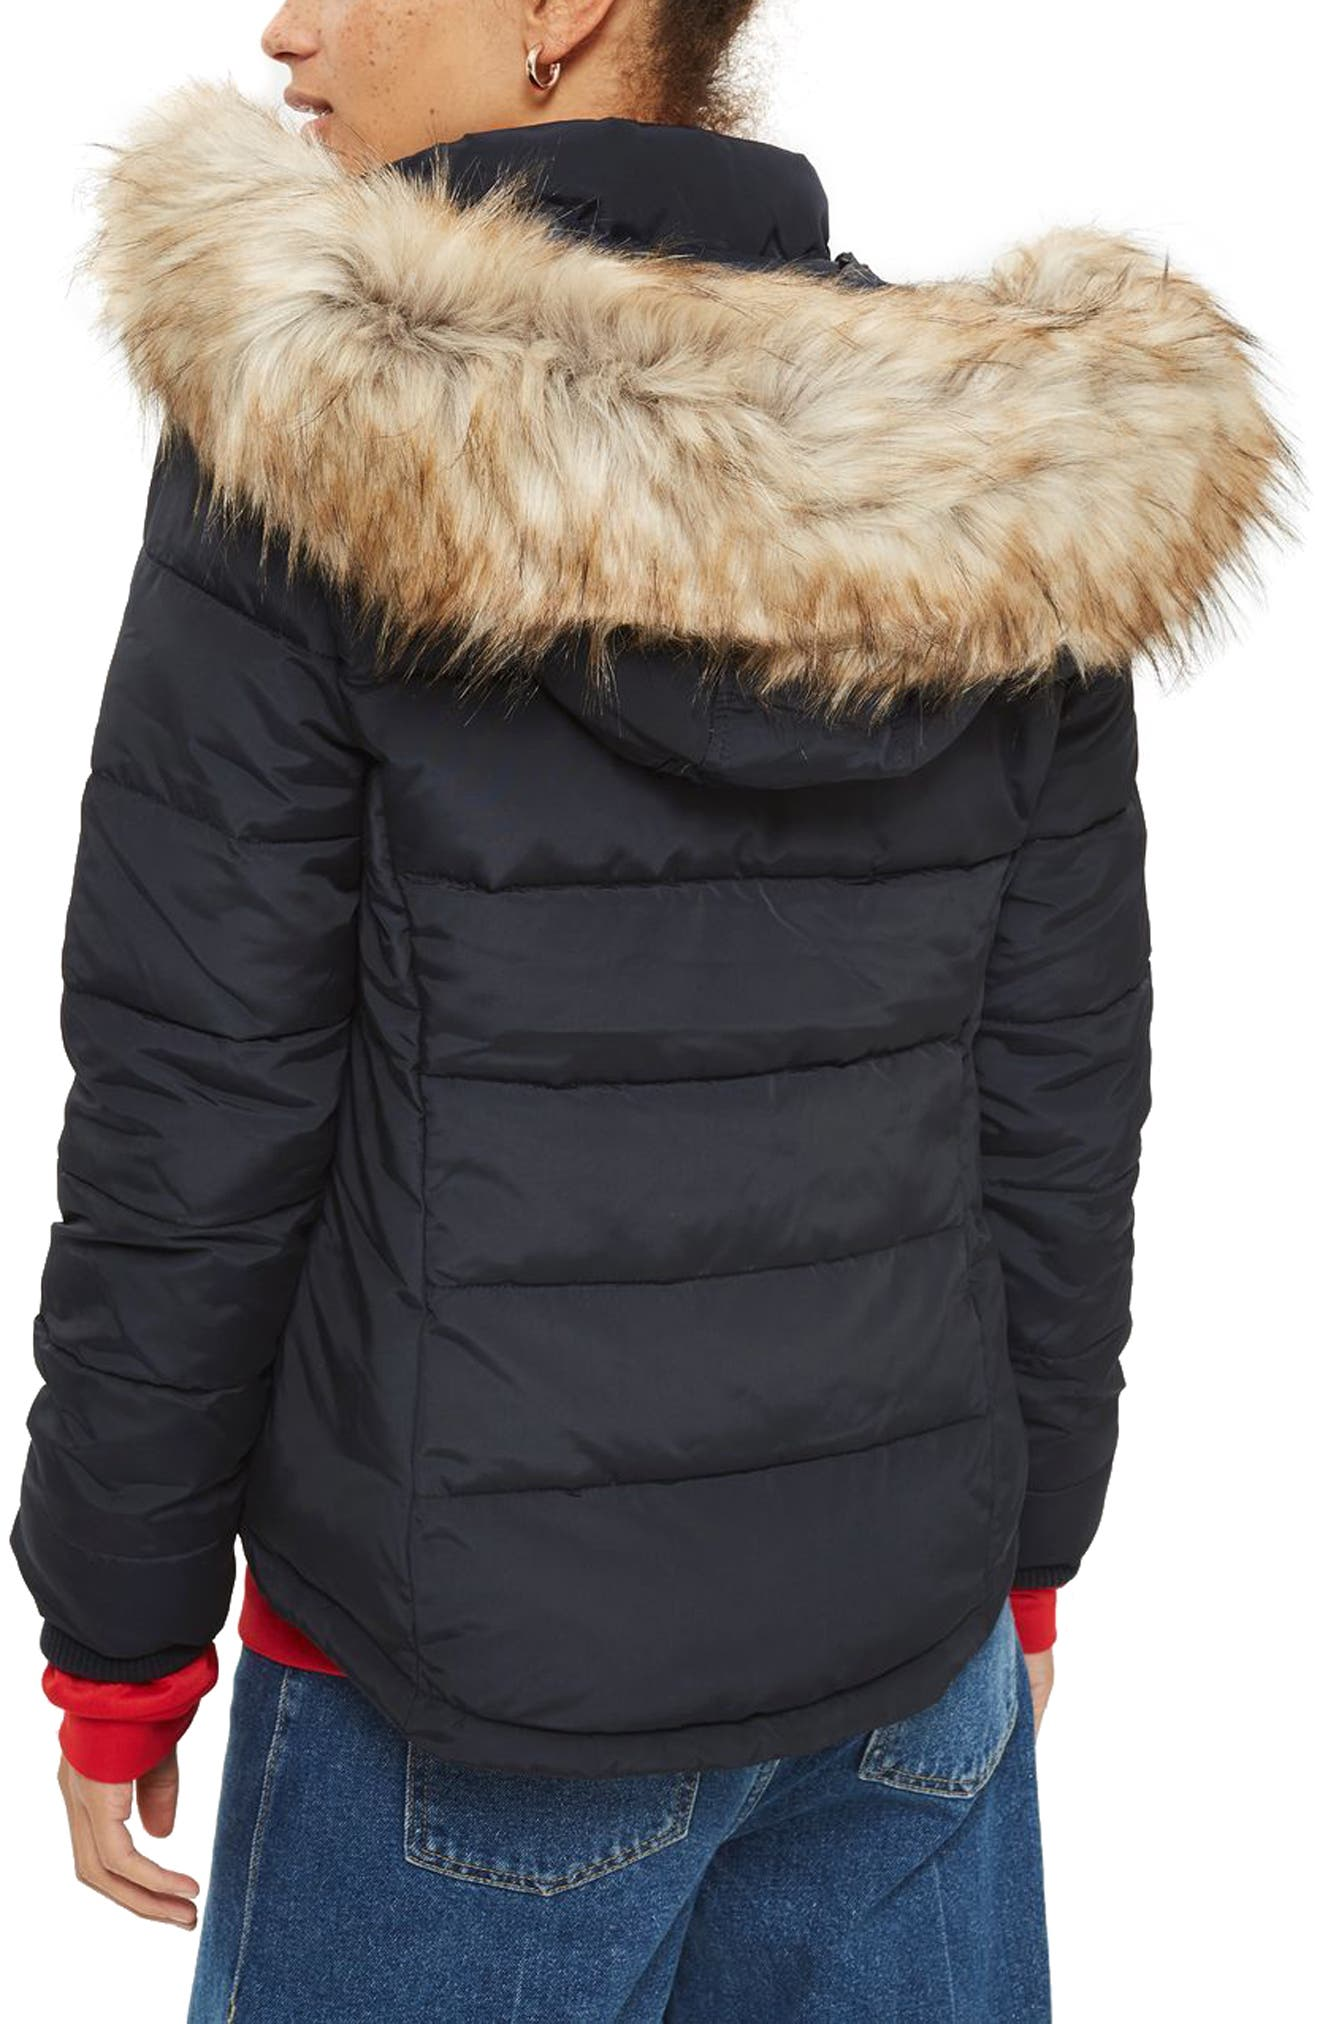 Alternate Image 3  - Topshop Nancy Quilted Puffer Jacket with Faux Fur Trim